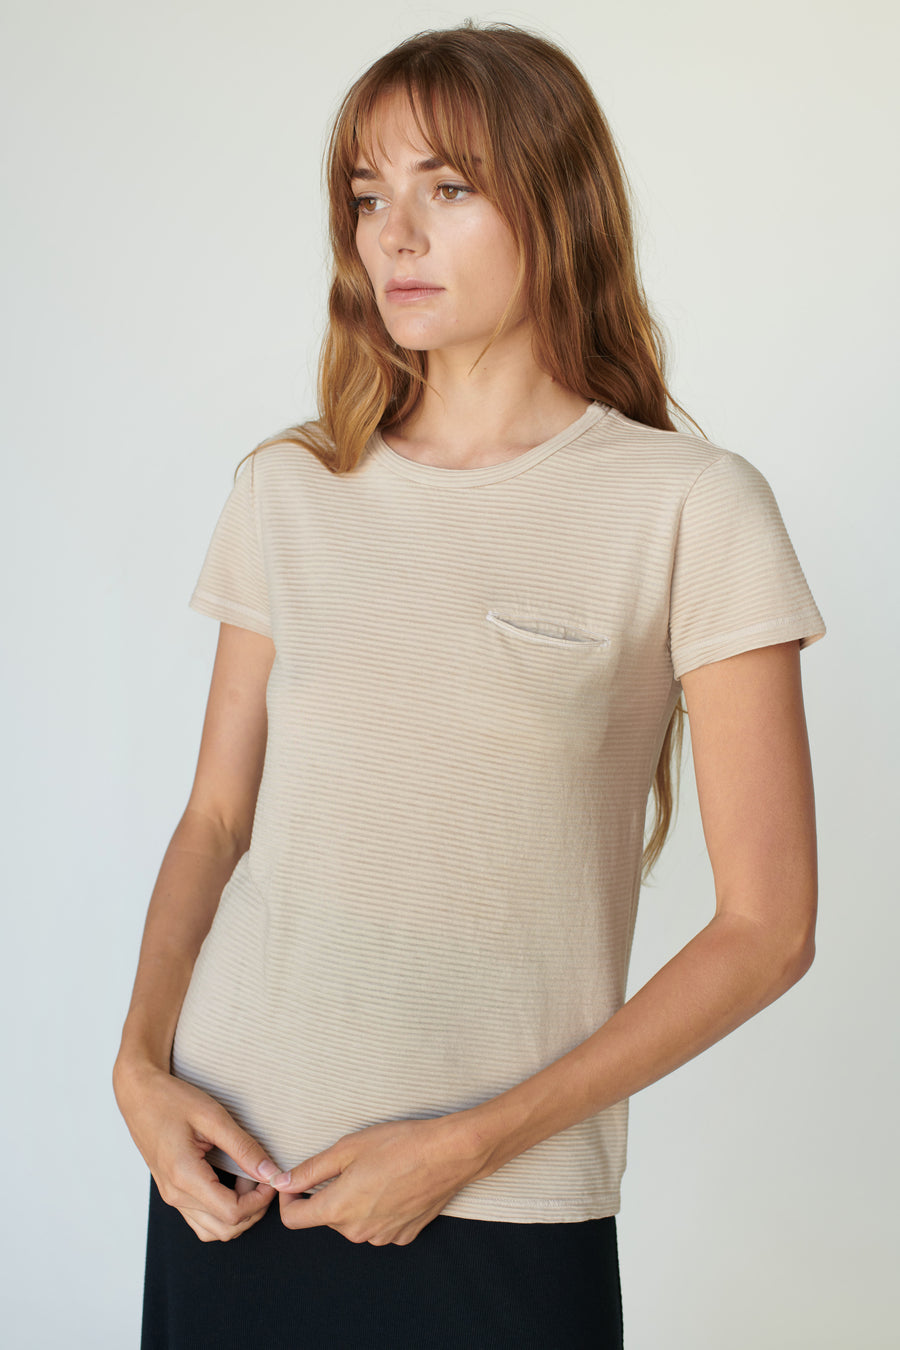 Stateside Crew Neck Top in Sone Beige Stripe